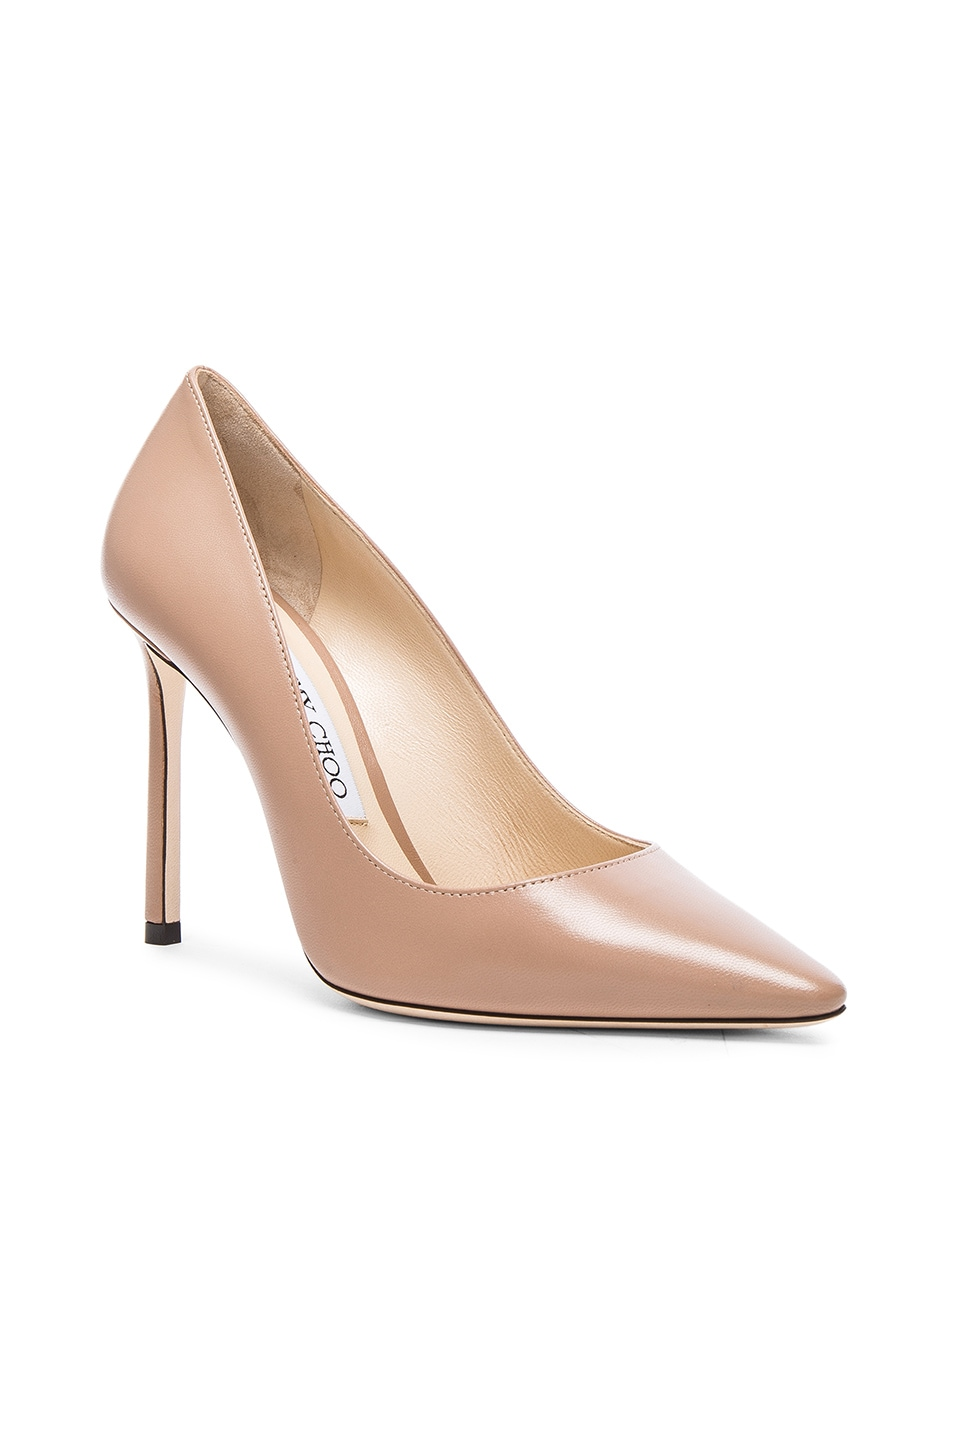 Image 2 of Jimmy Choo Romy 100 Leather Pumps in Ballet Pink